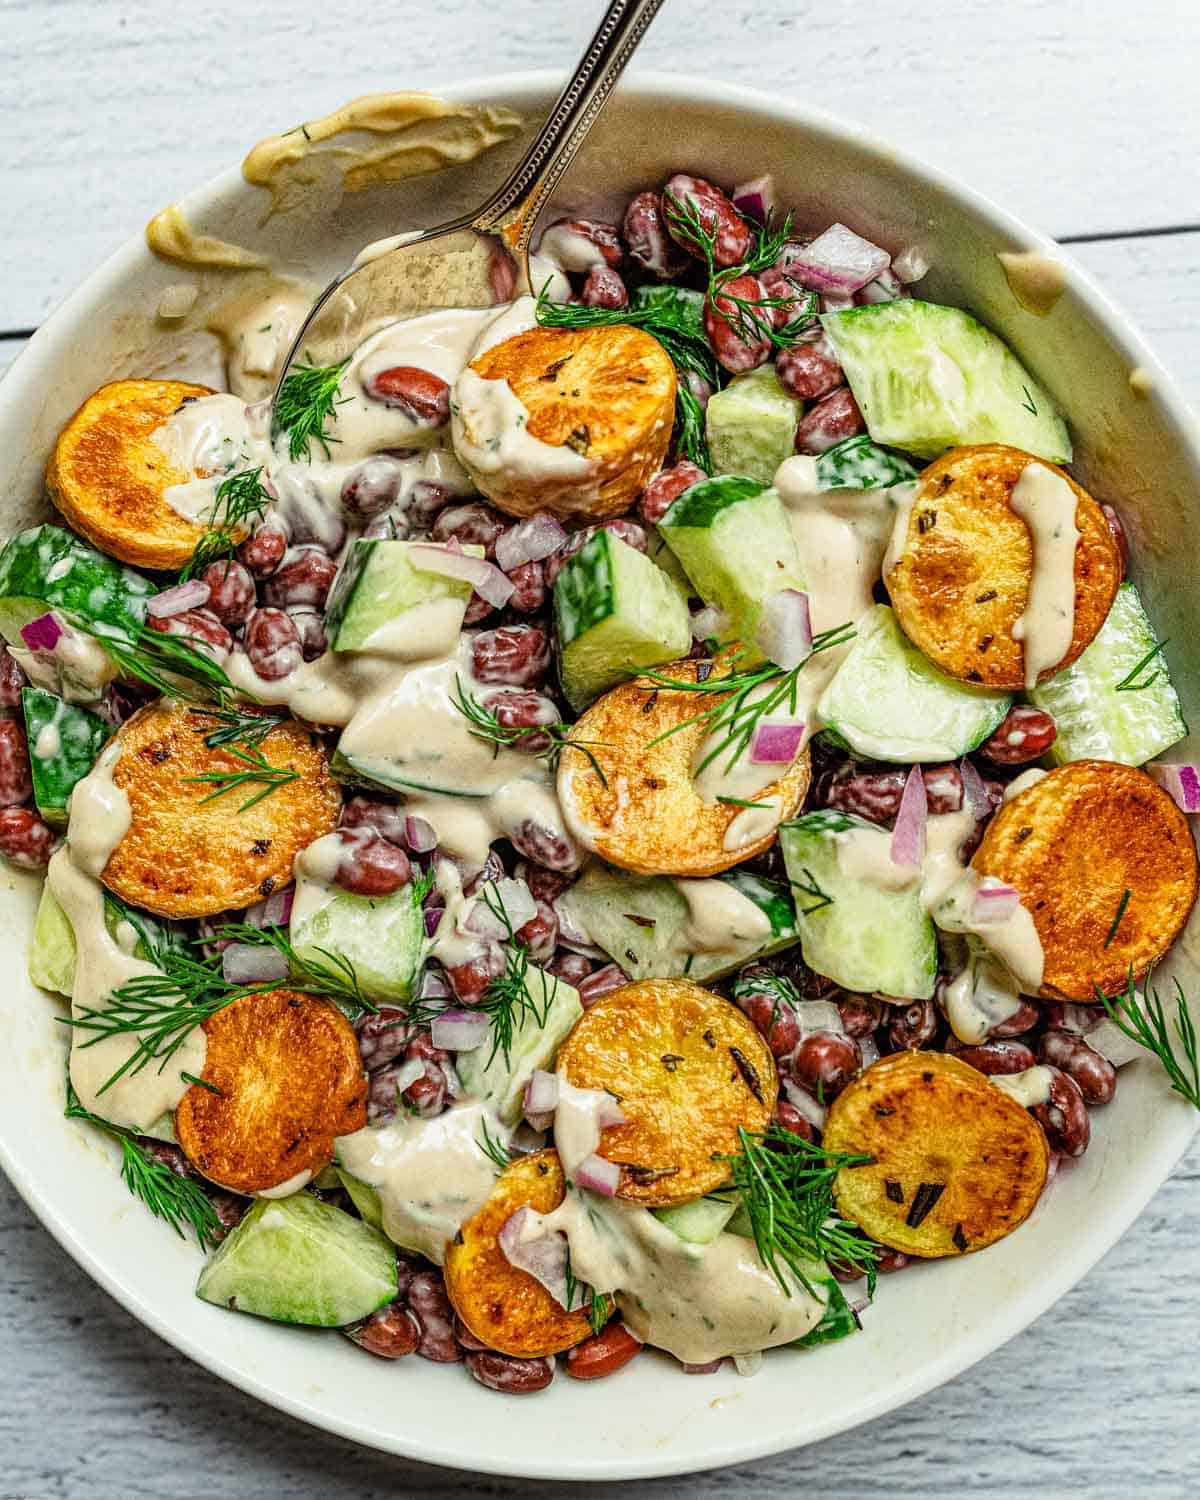 Roasted baby potatoes, chopped cucumbers, and red beans in a creamy dill dressing.